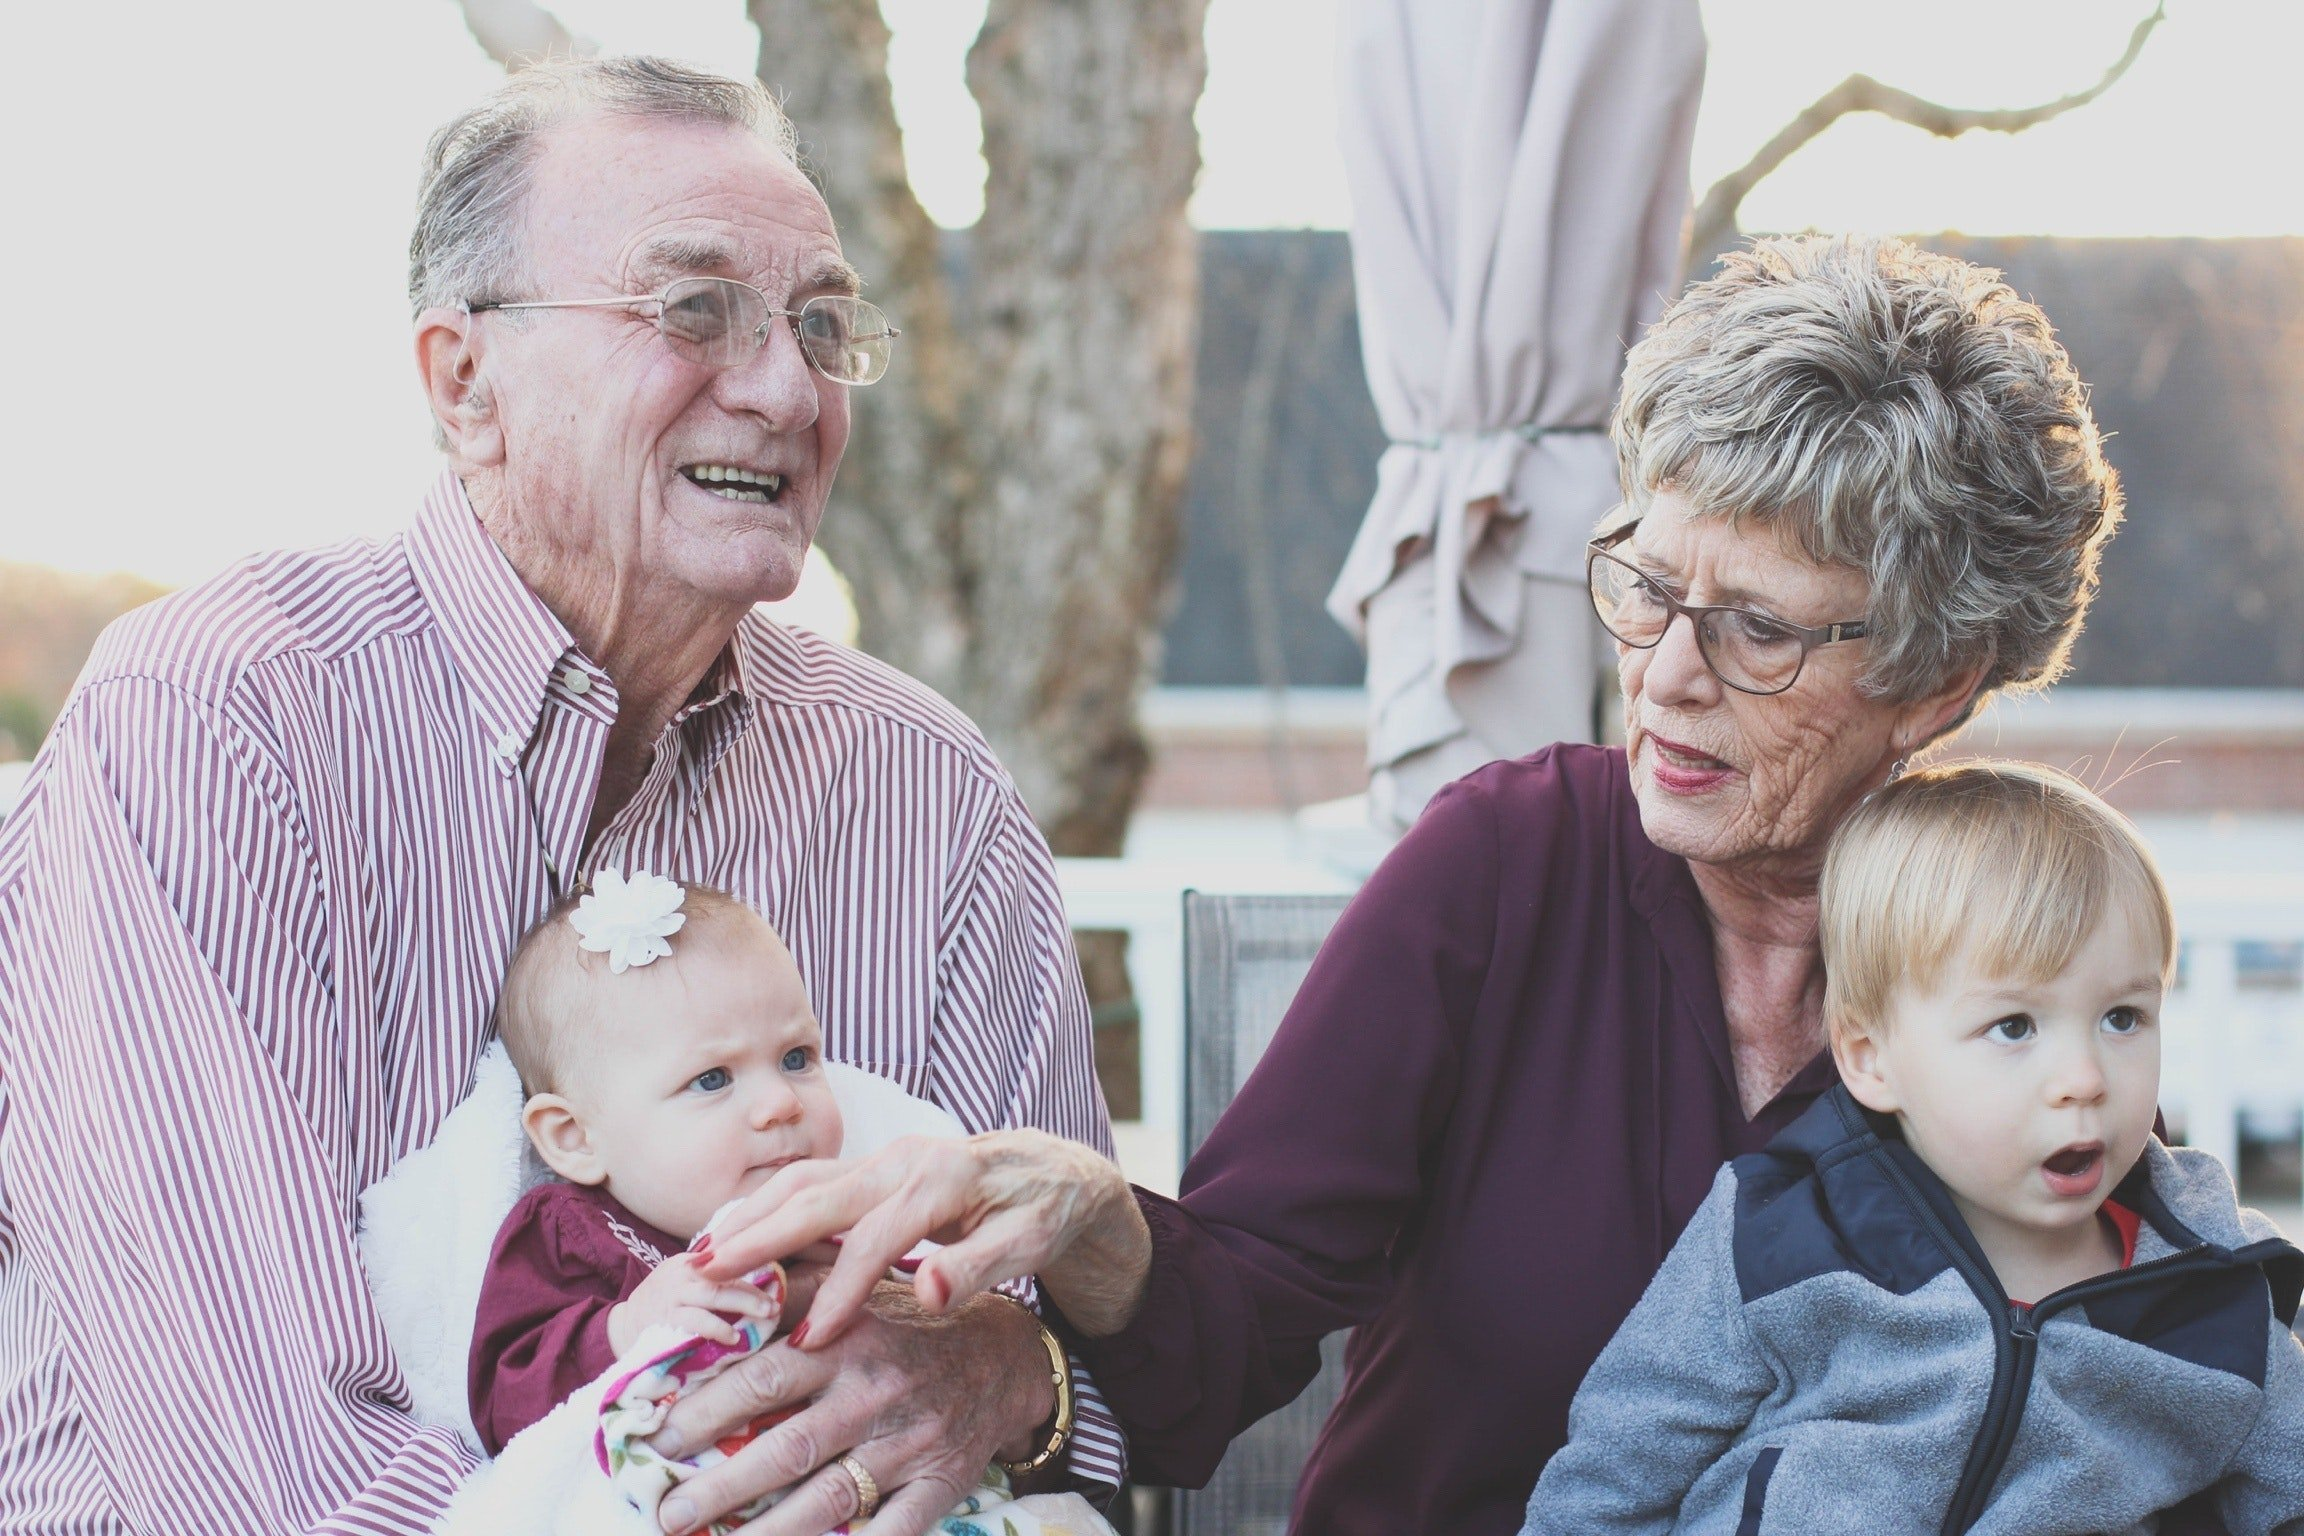 An elderly couple with two toddlers | Source: Pexels.com